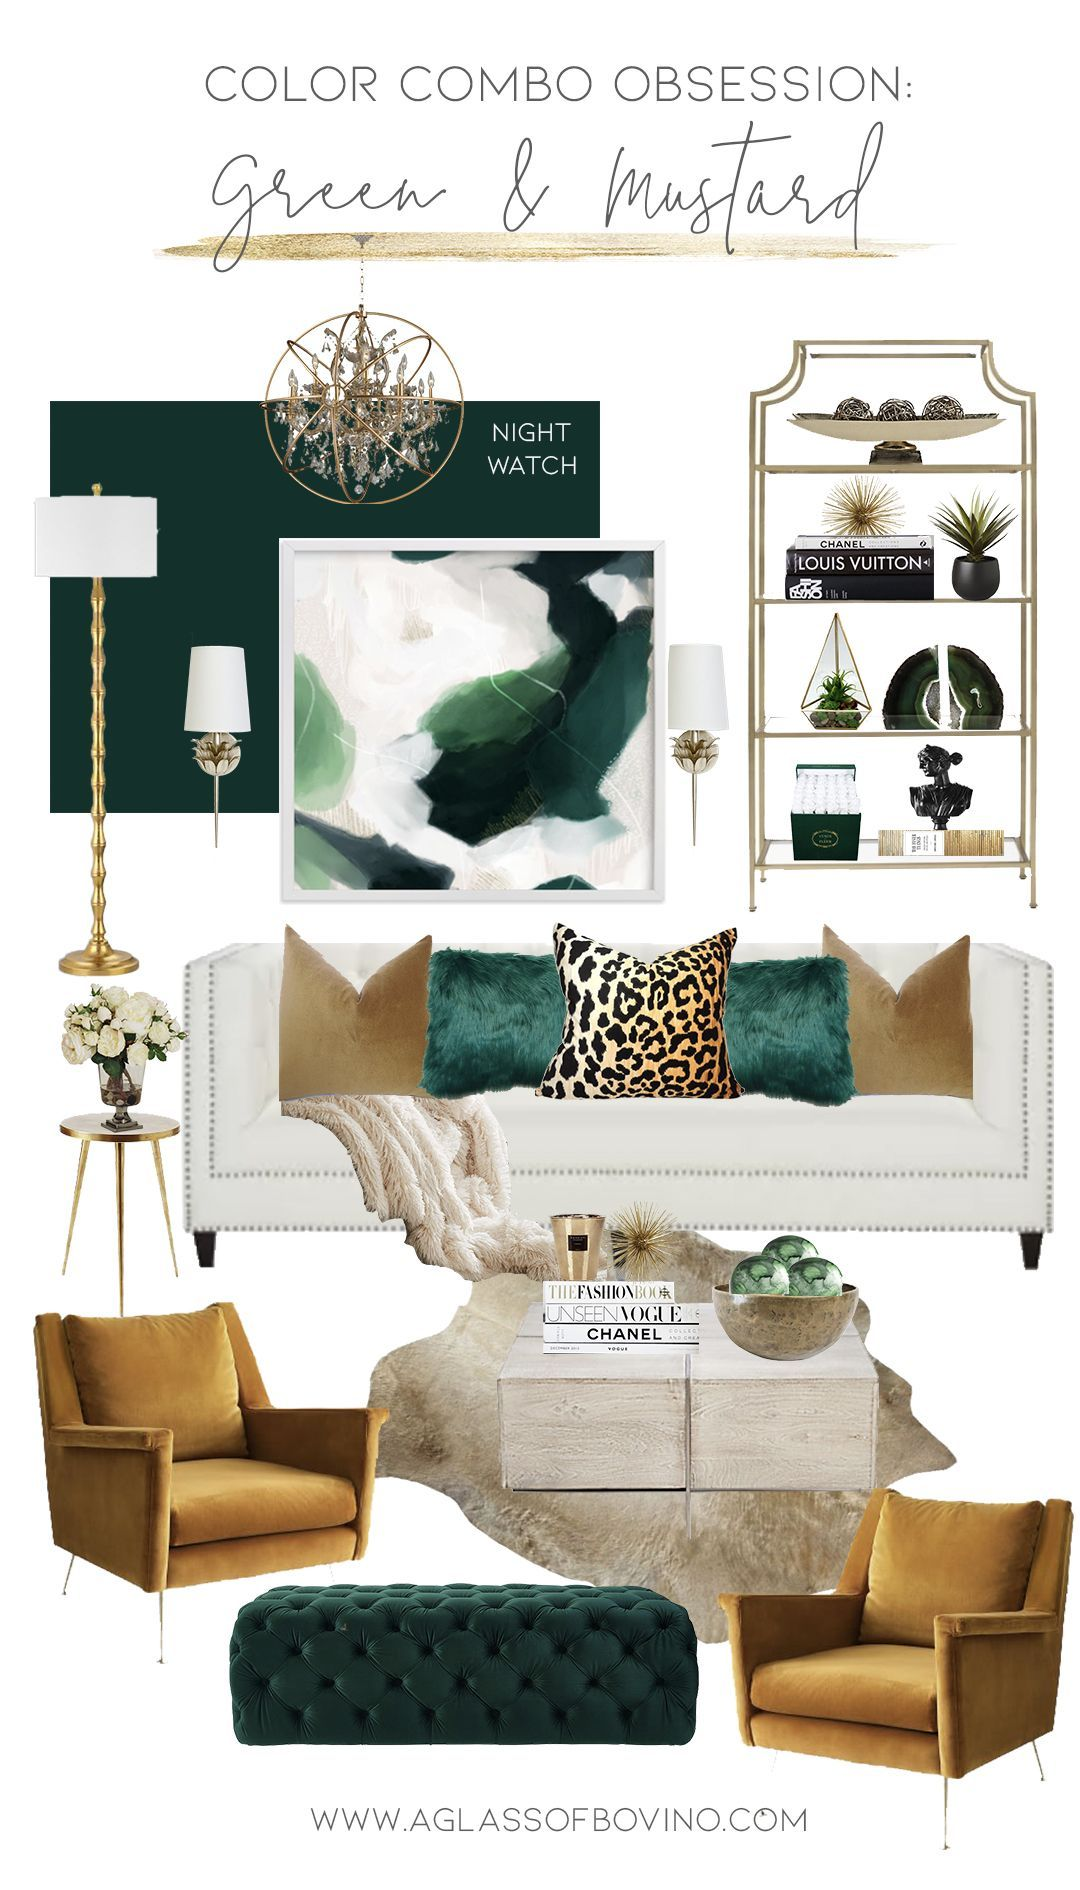 Color Combo Obsessed I Designing a Glam Room With Dark Green, Mustard and Gold Accents #darkgreenkitchen